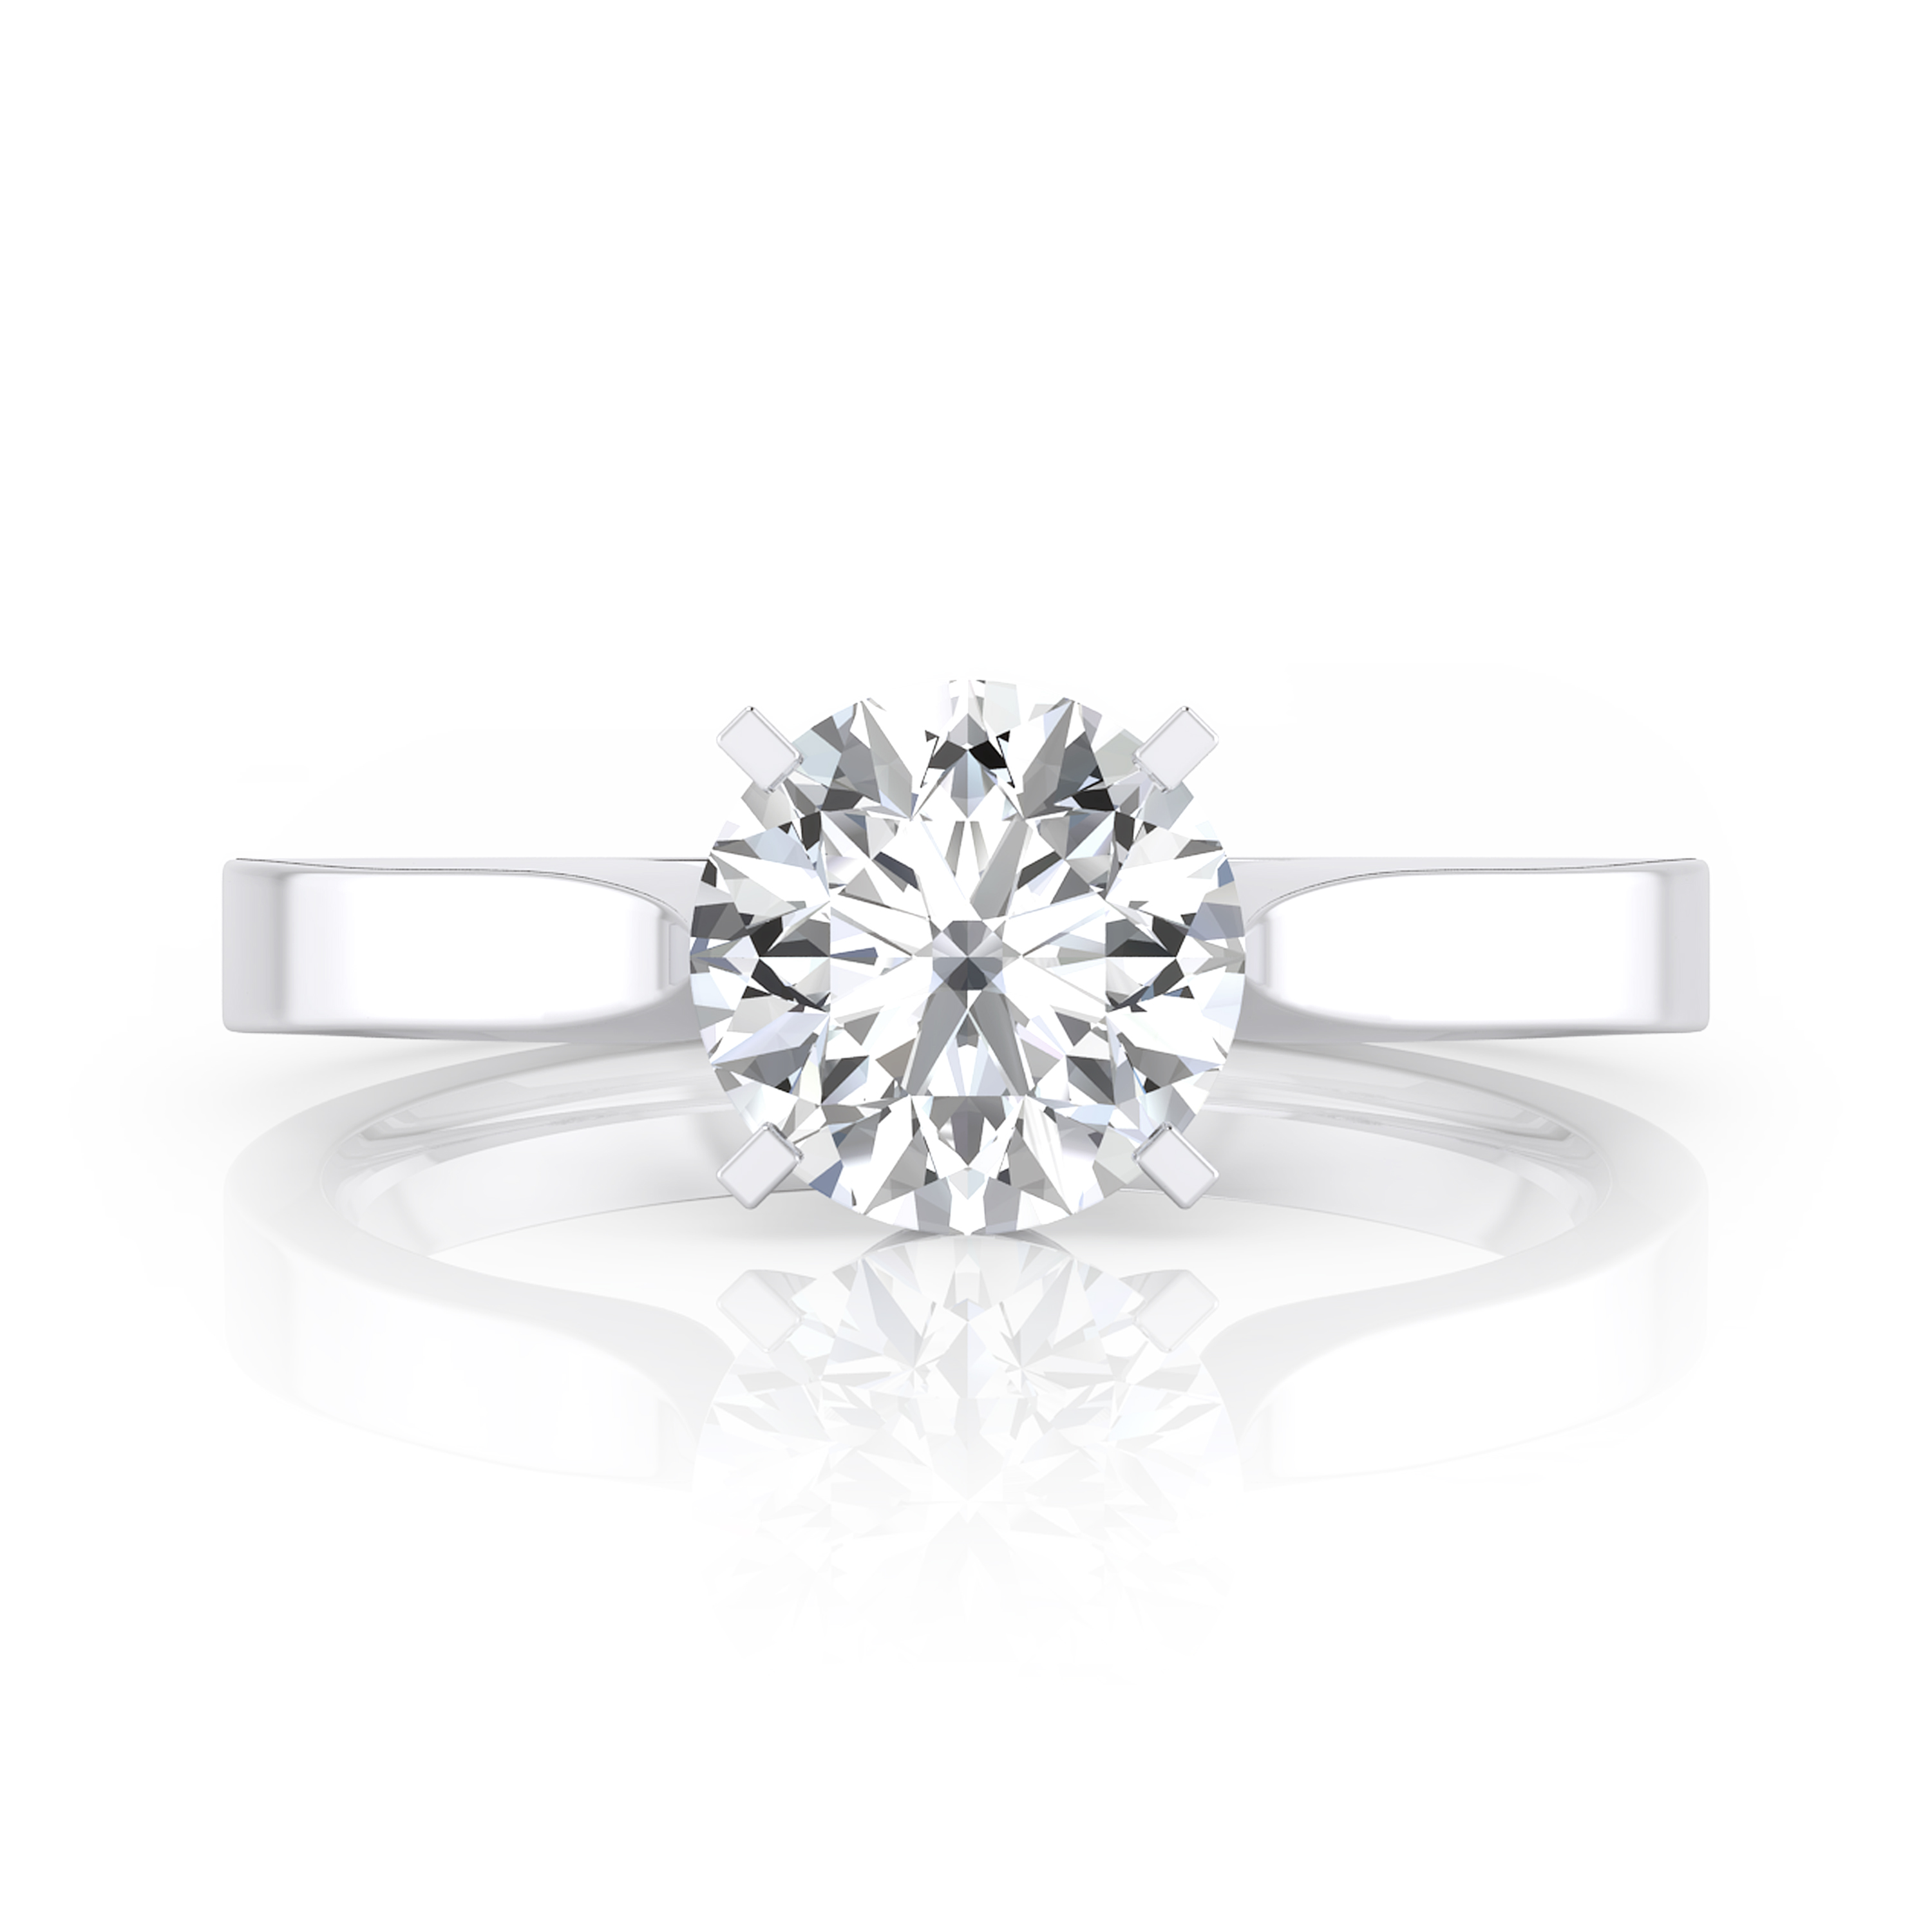 Classic engagement ring, four points, solitary style, 18 k white gold